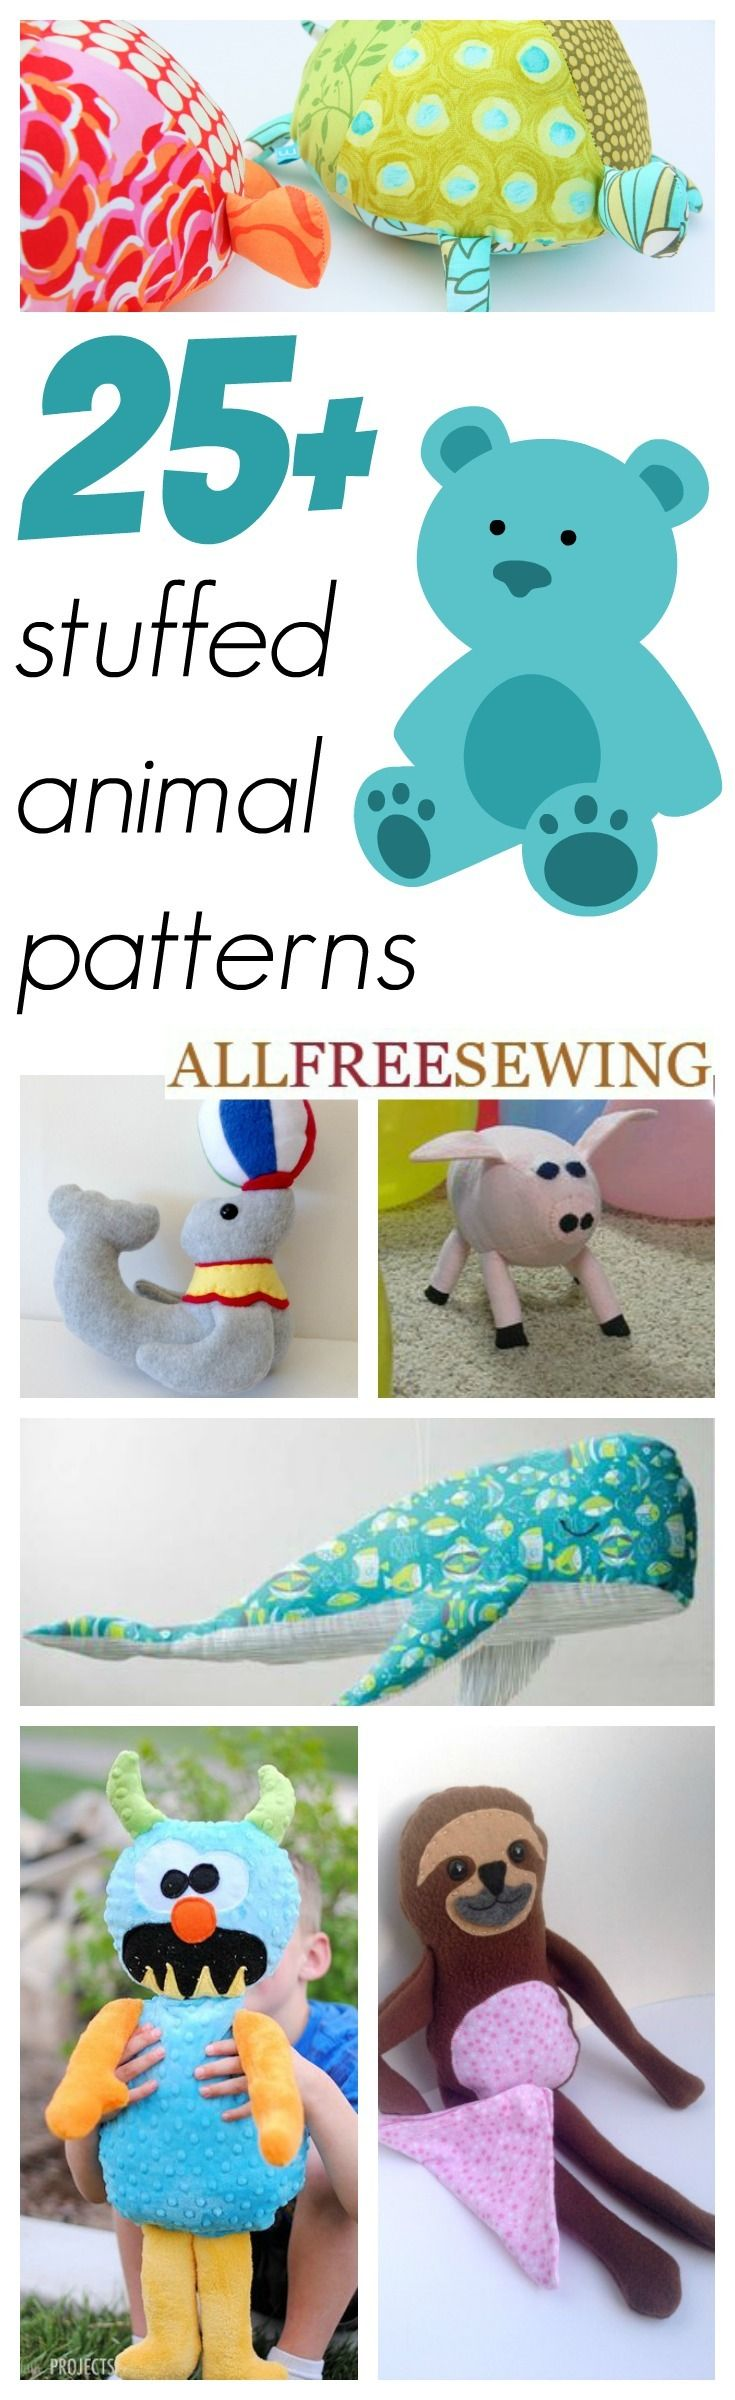 Mas de 25 patrones de animales de peluche - 25+ Easy Stuffed Animal Patterns